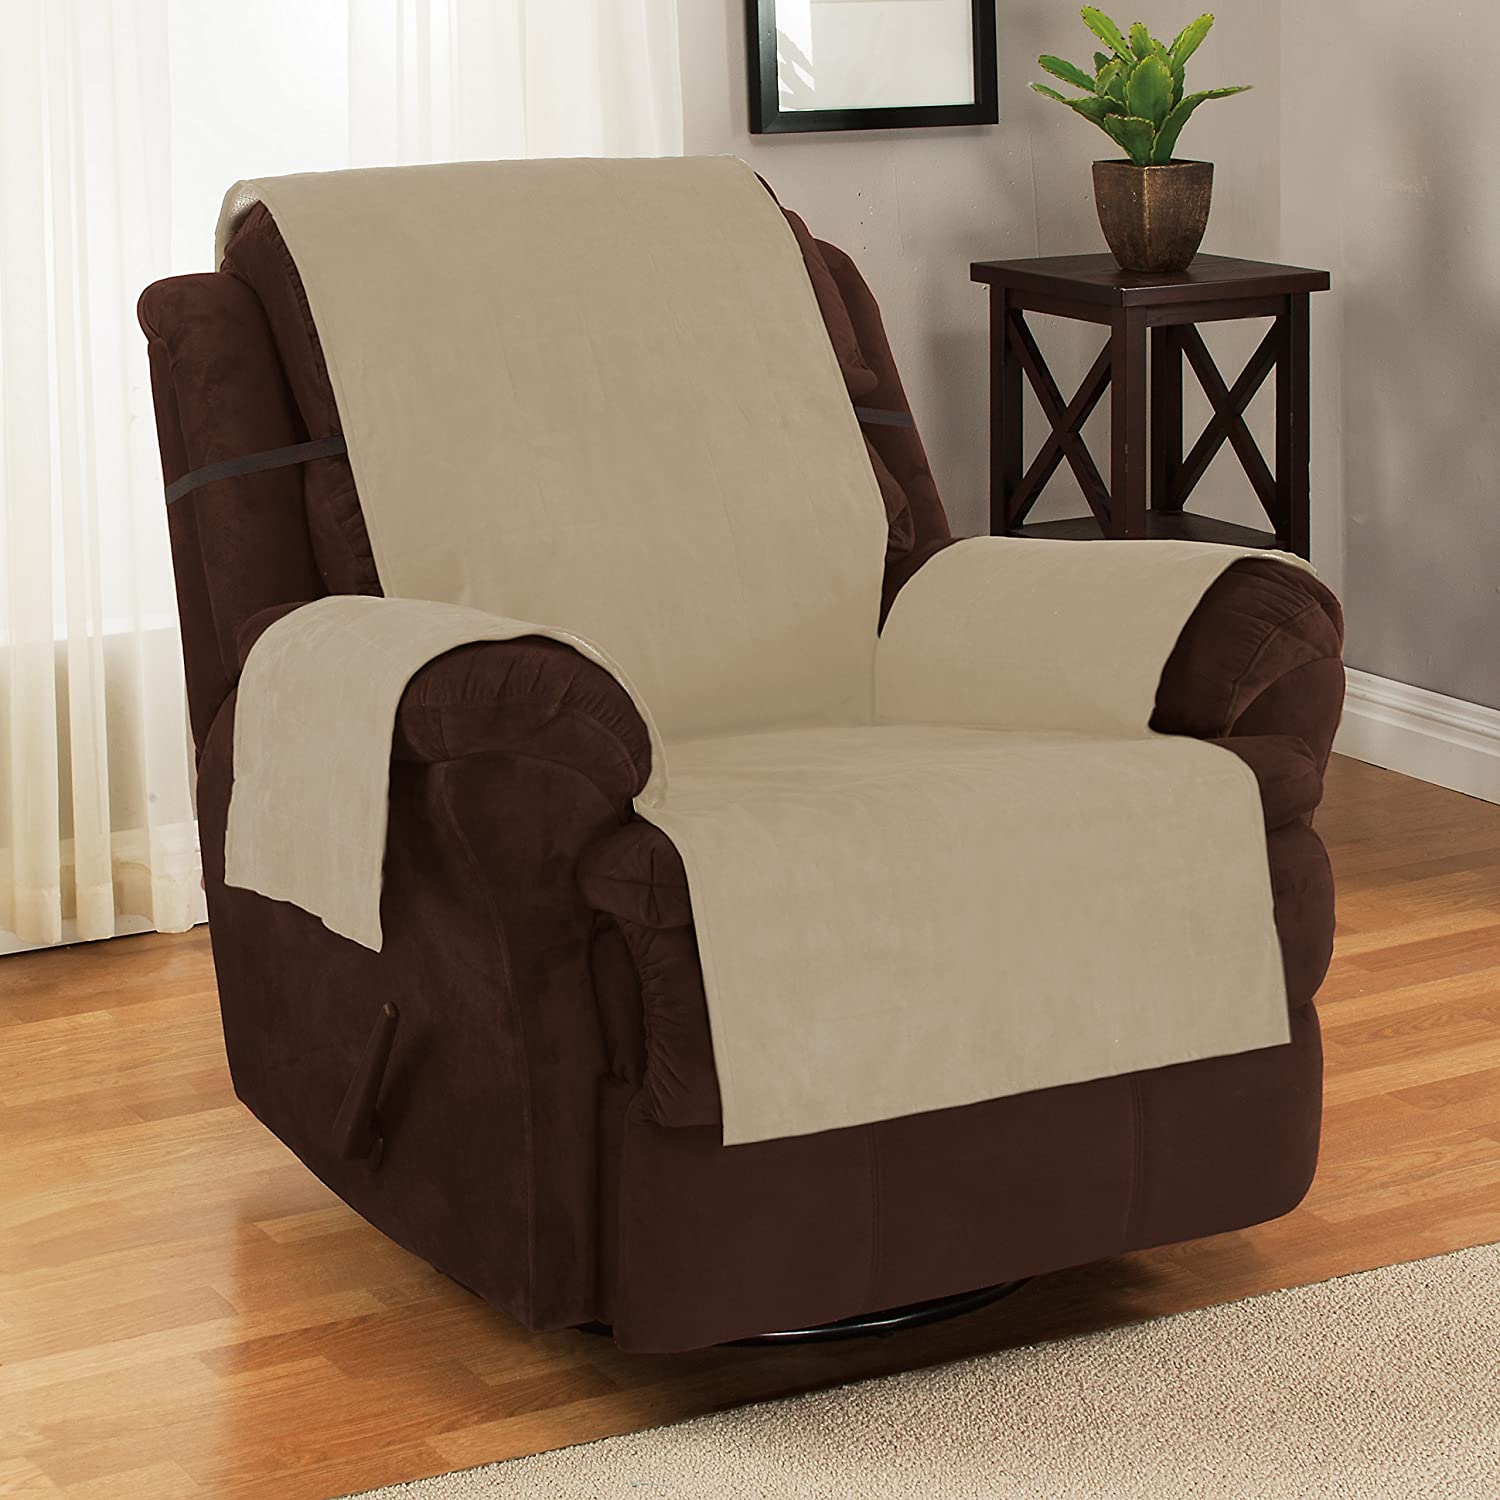 recliner slipcovers medium ip pique lift stretch slipcover fit sure com walmart